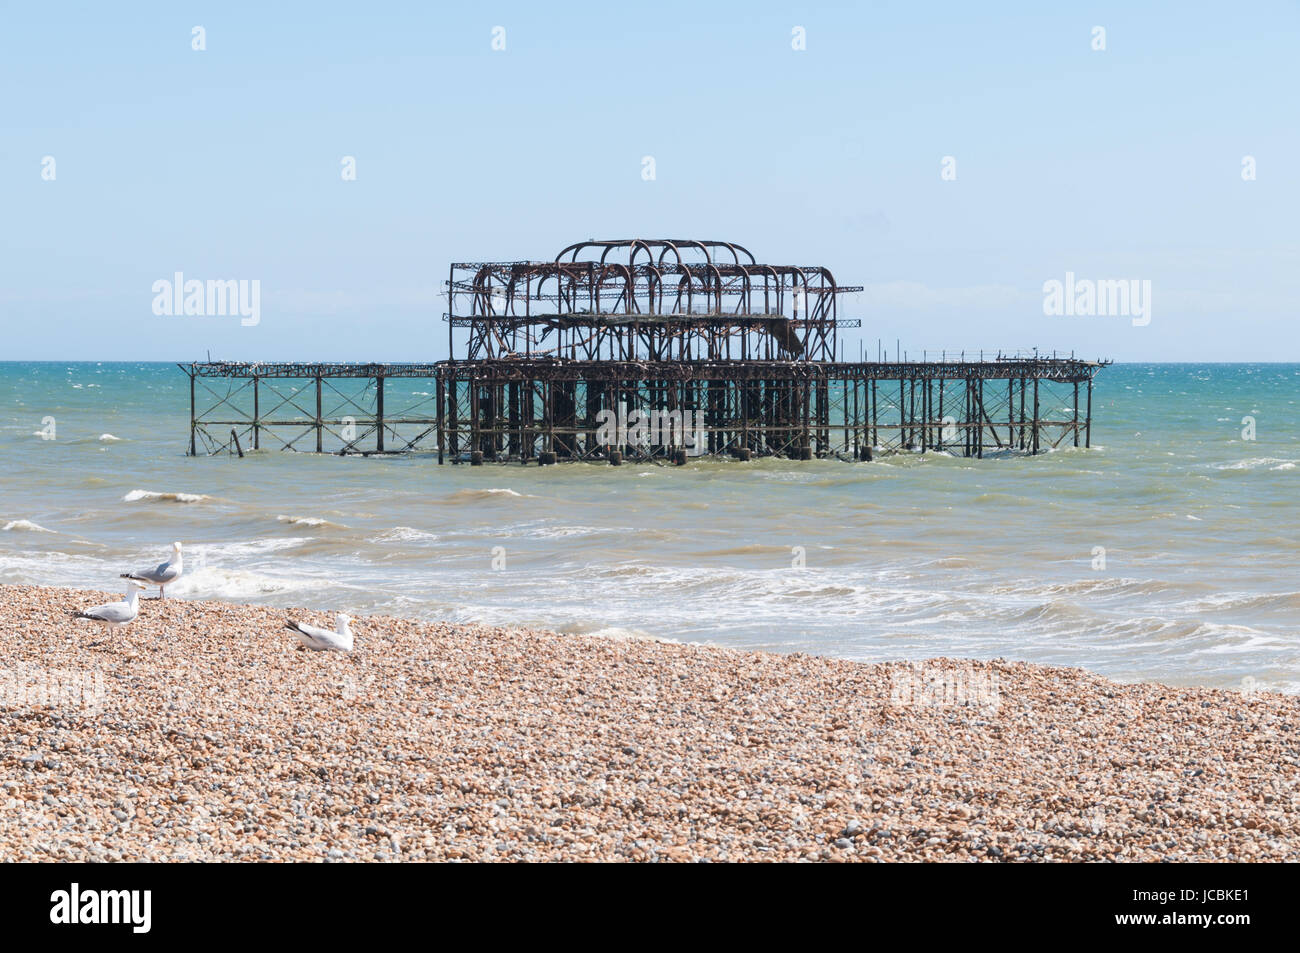 The West Pier, Brighton, United Kingdom - Stock Image